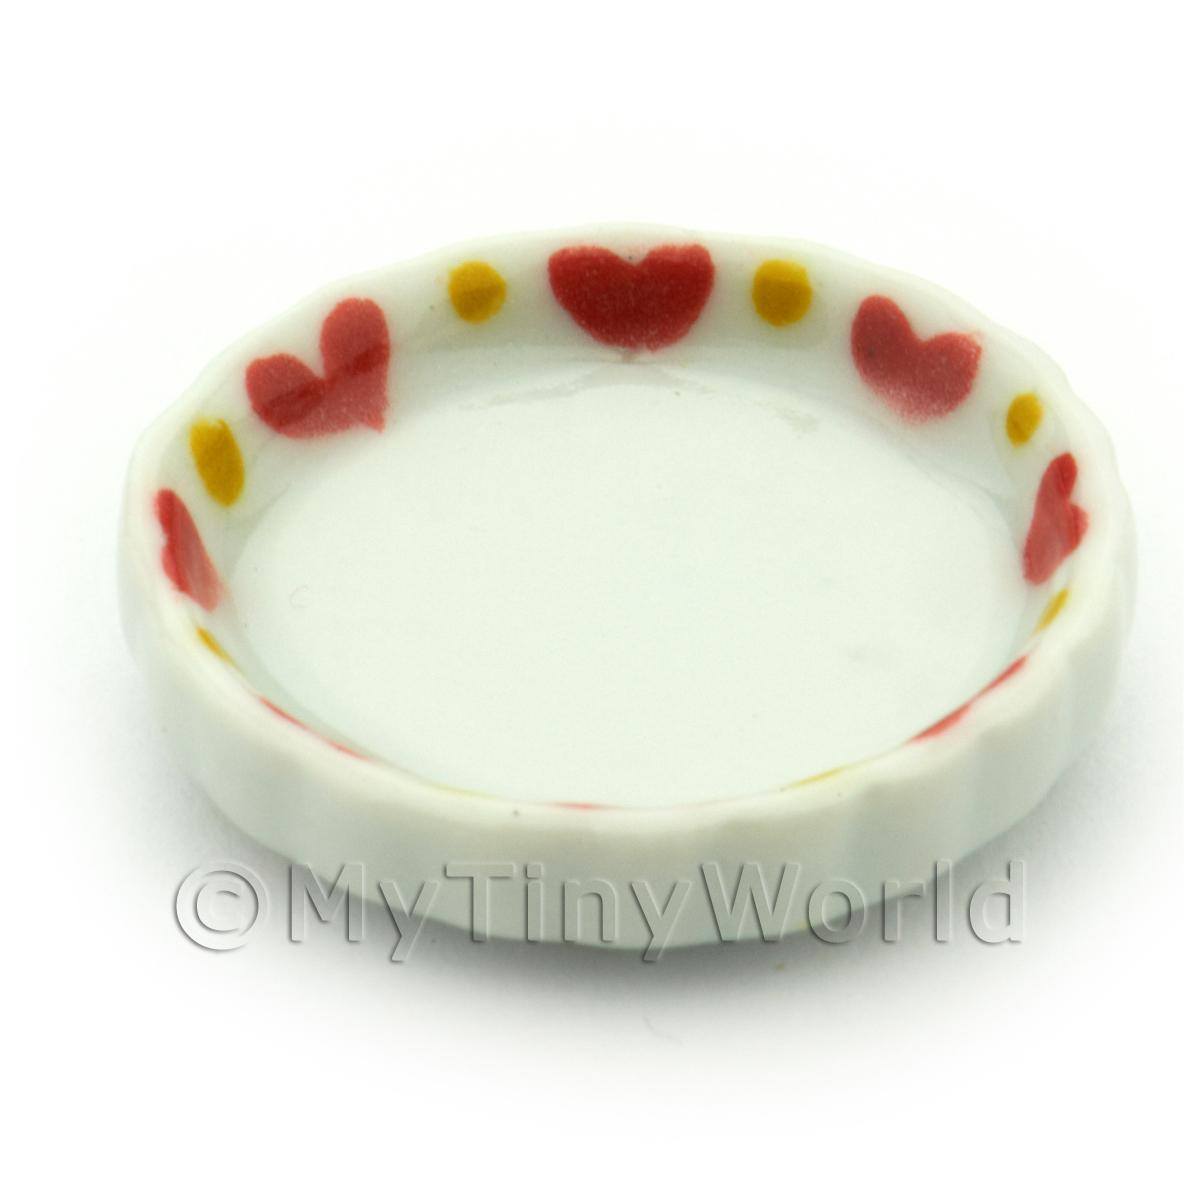 Dolls House Miniature Heart Pattern Ceramic Flan Dish